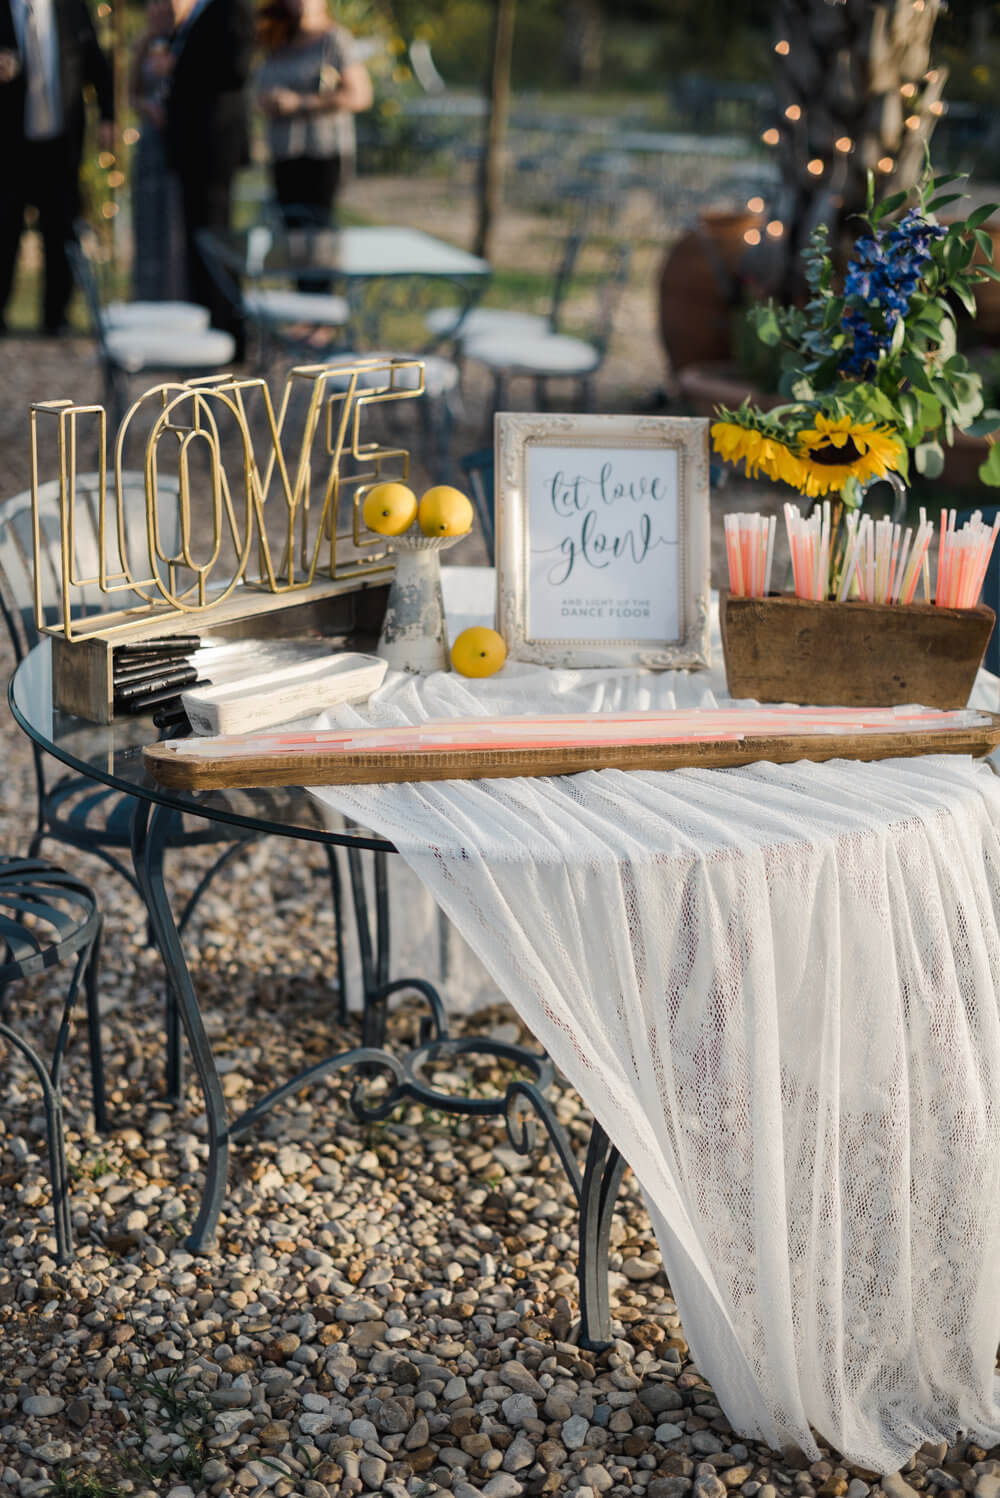 French country wedding inspiration styled table with glow sticks and props.